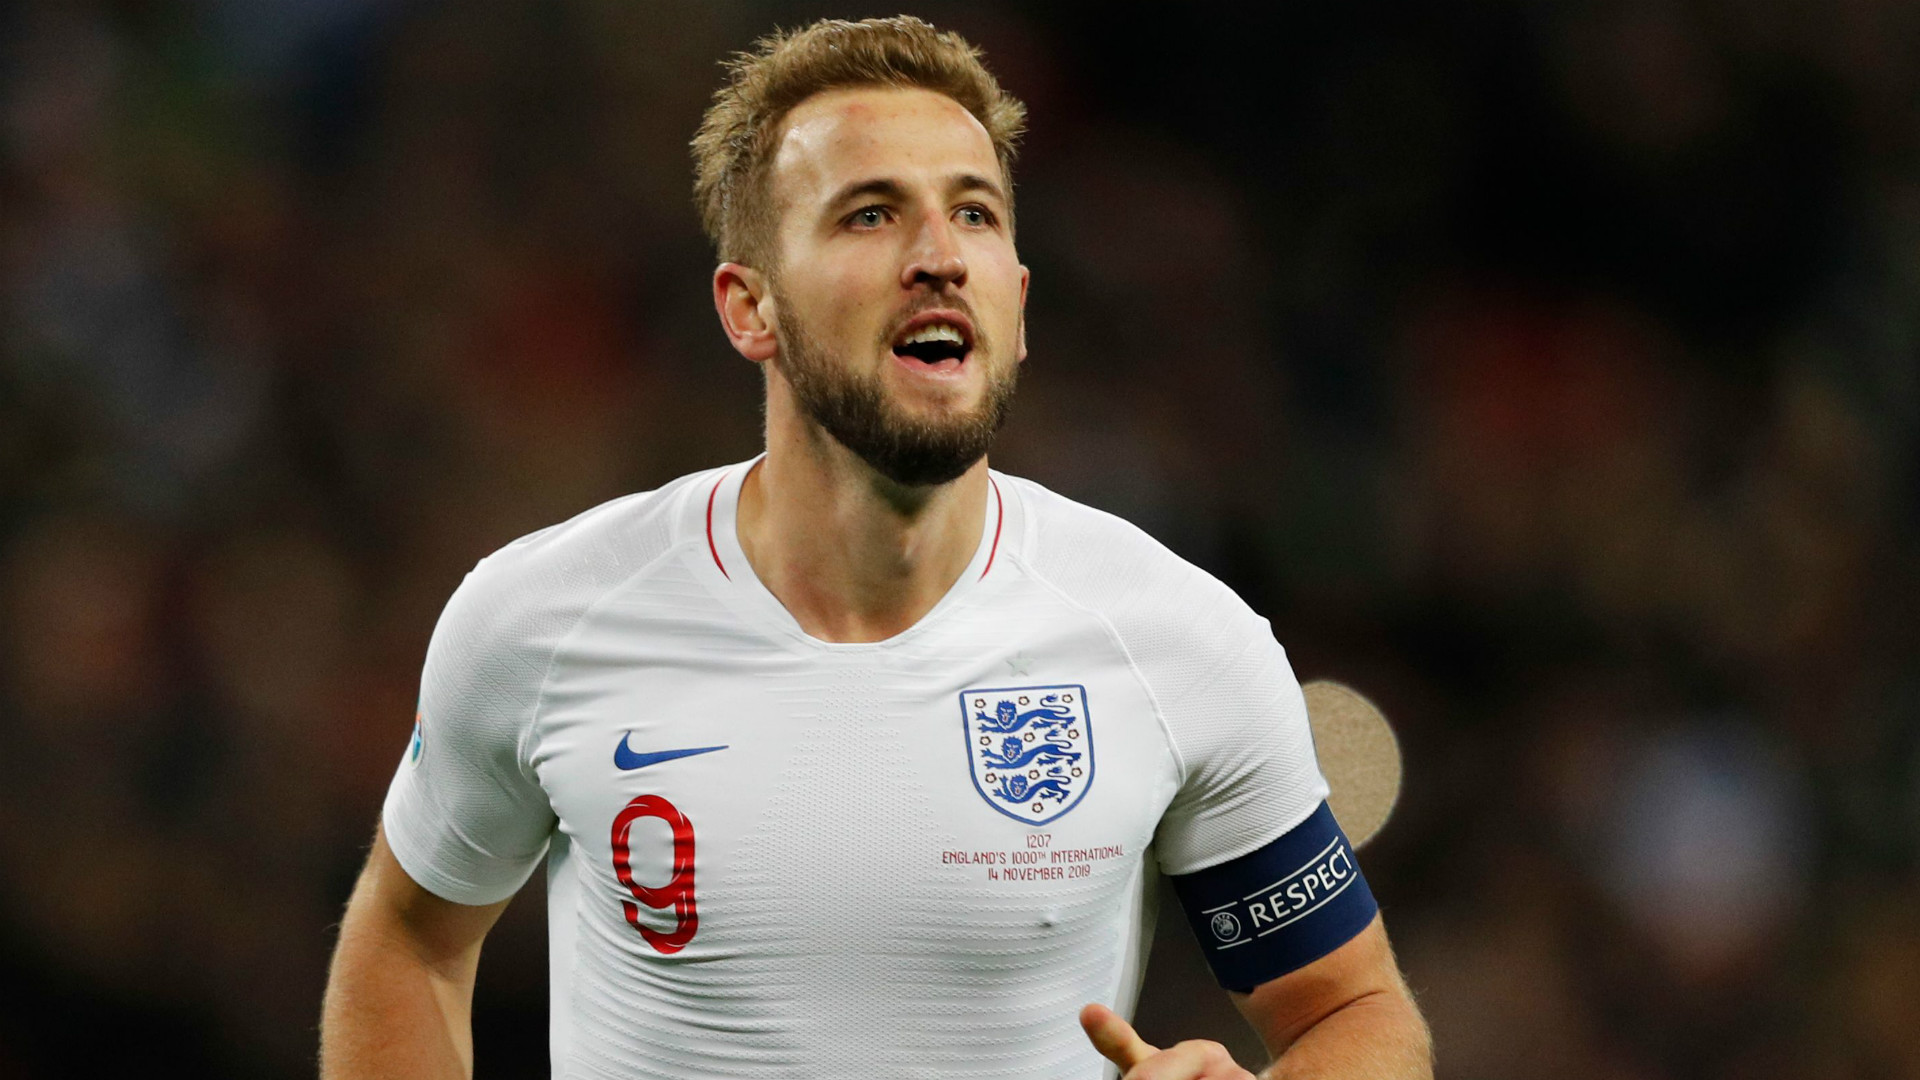 'Even Arsenal fans were buying shirts sponsored by Kane!' - Leyton Orient chief praises 'first-class' Tottenham star